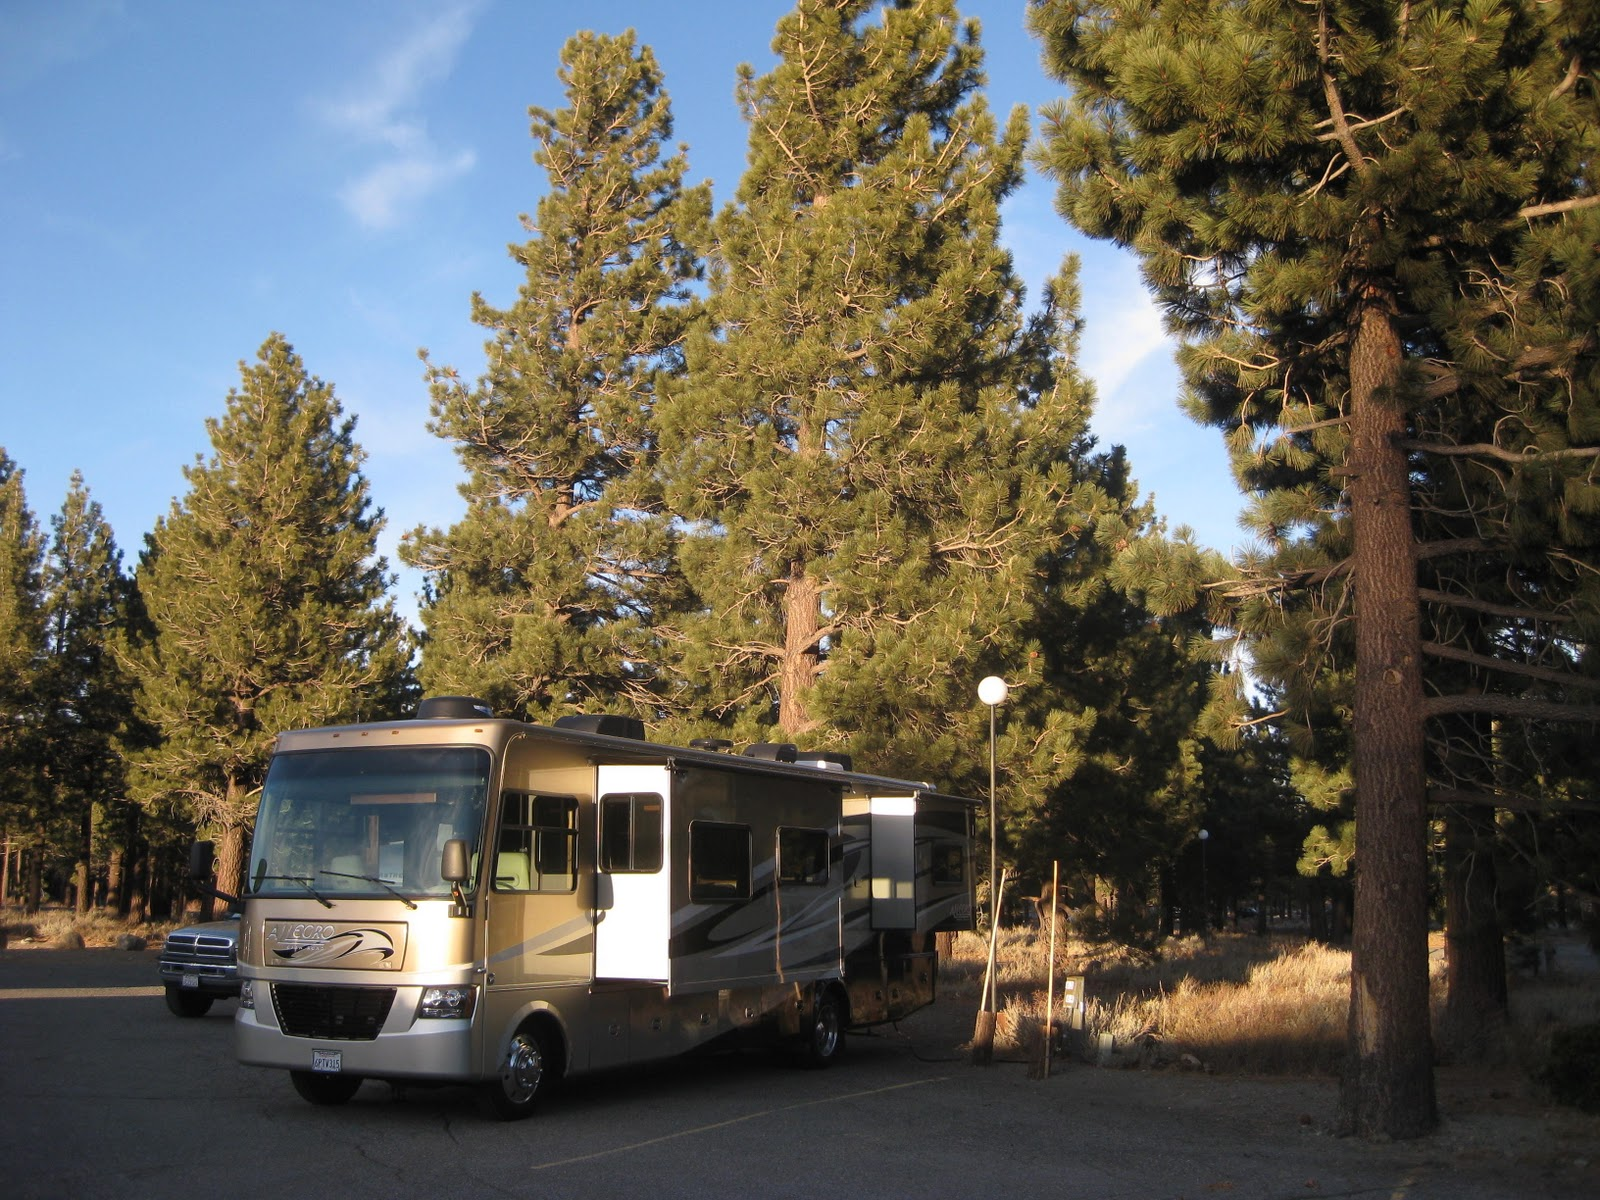 THE 15 BEST Things to Do in Mammoth Lakes - (with Photos) - TripAdvisor